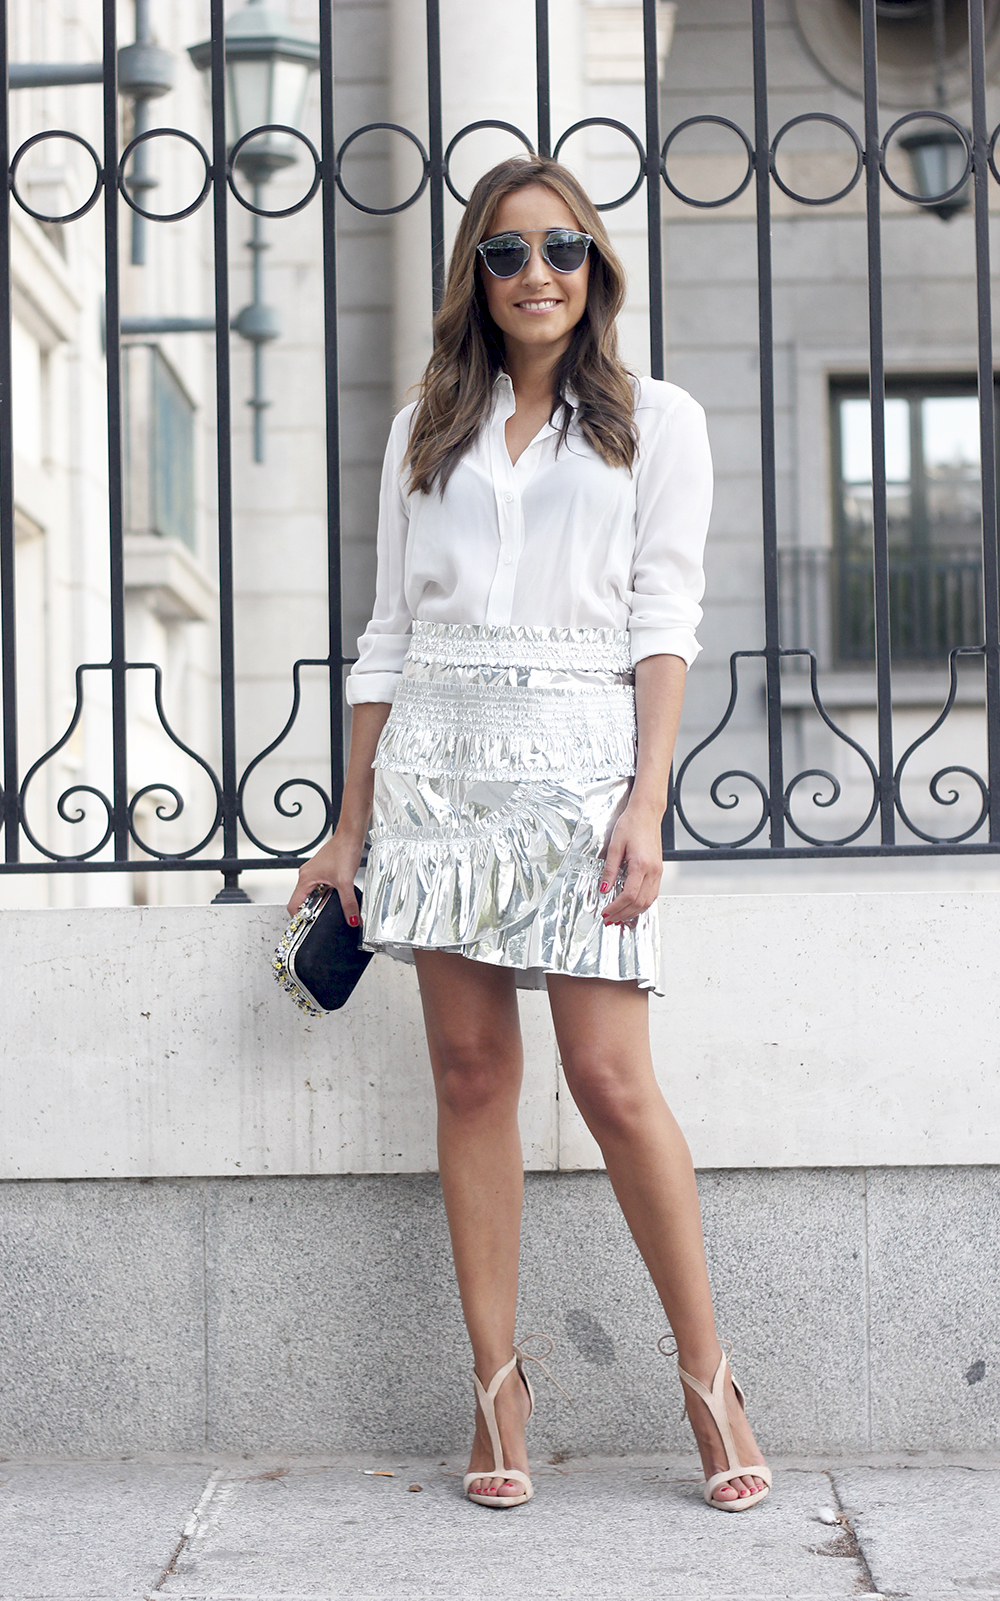 Isabel Marant Metallic Skirt white shirt nude sandals dior so real sunnies outfit style fashion27